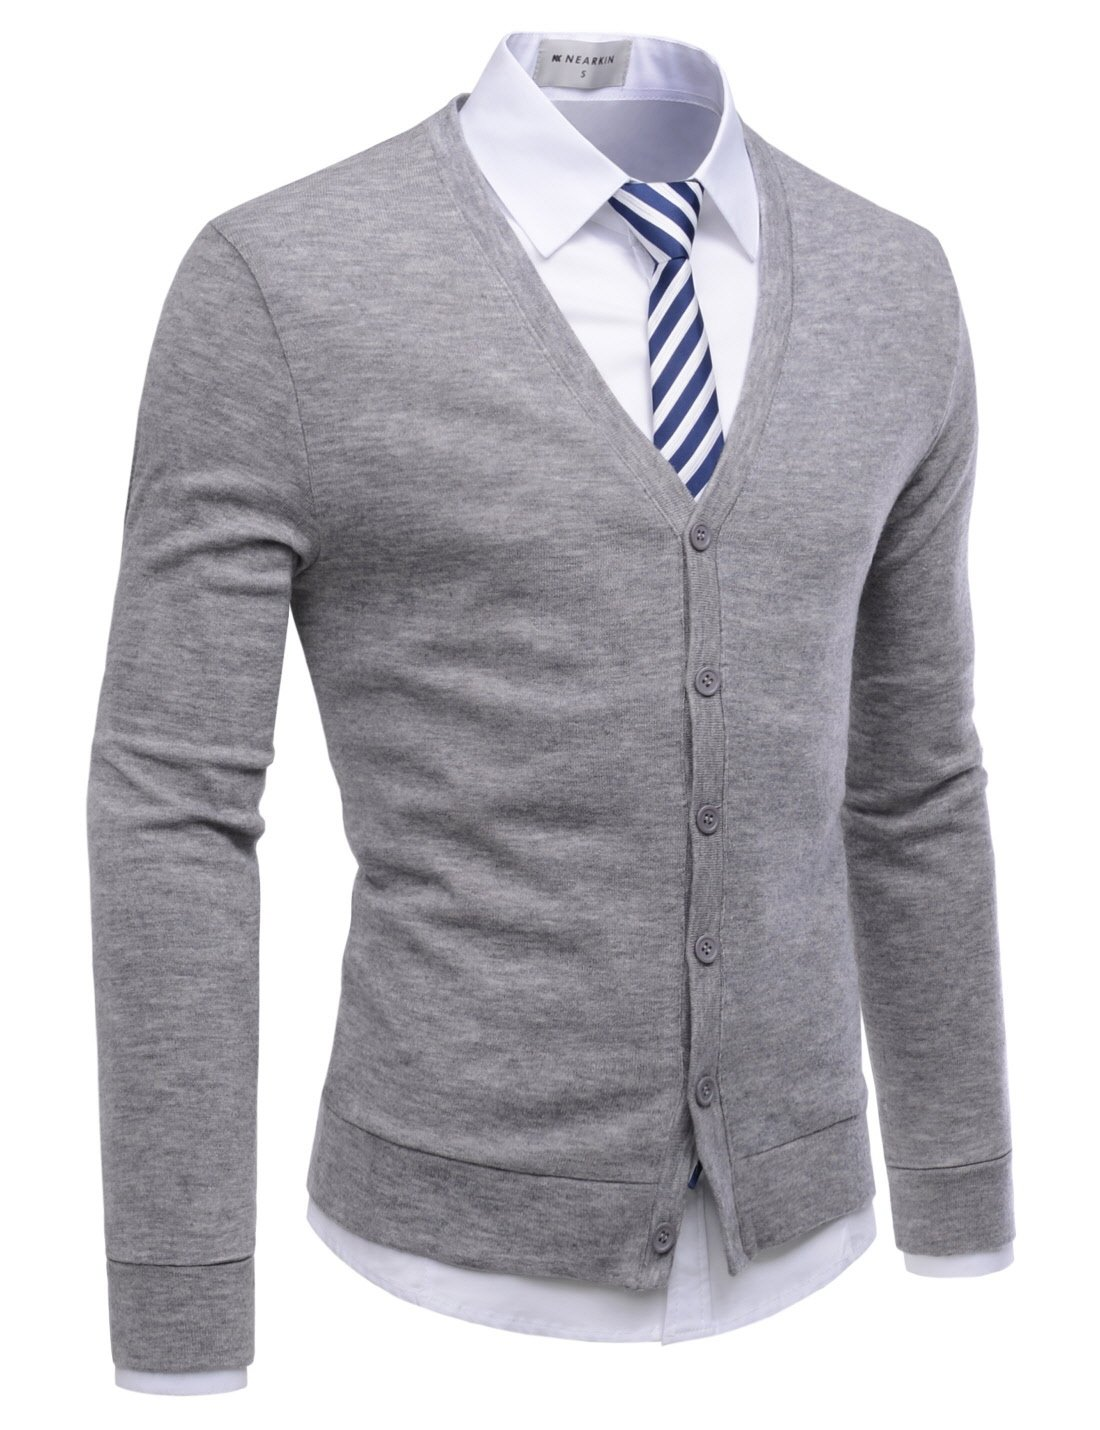 NEARKIN (NKNKCAC1) Mens Knitwear City Casual Slim Cut Long Sleeve Cardigan Sweaters GRAY US M(Tag size M)